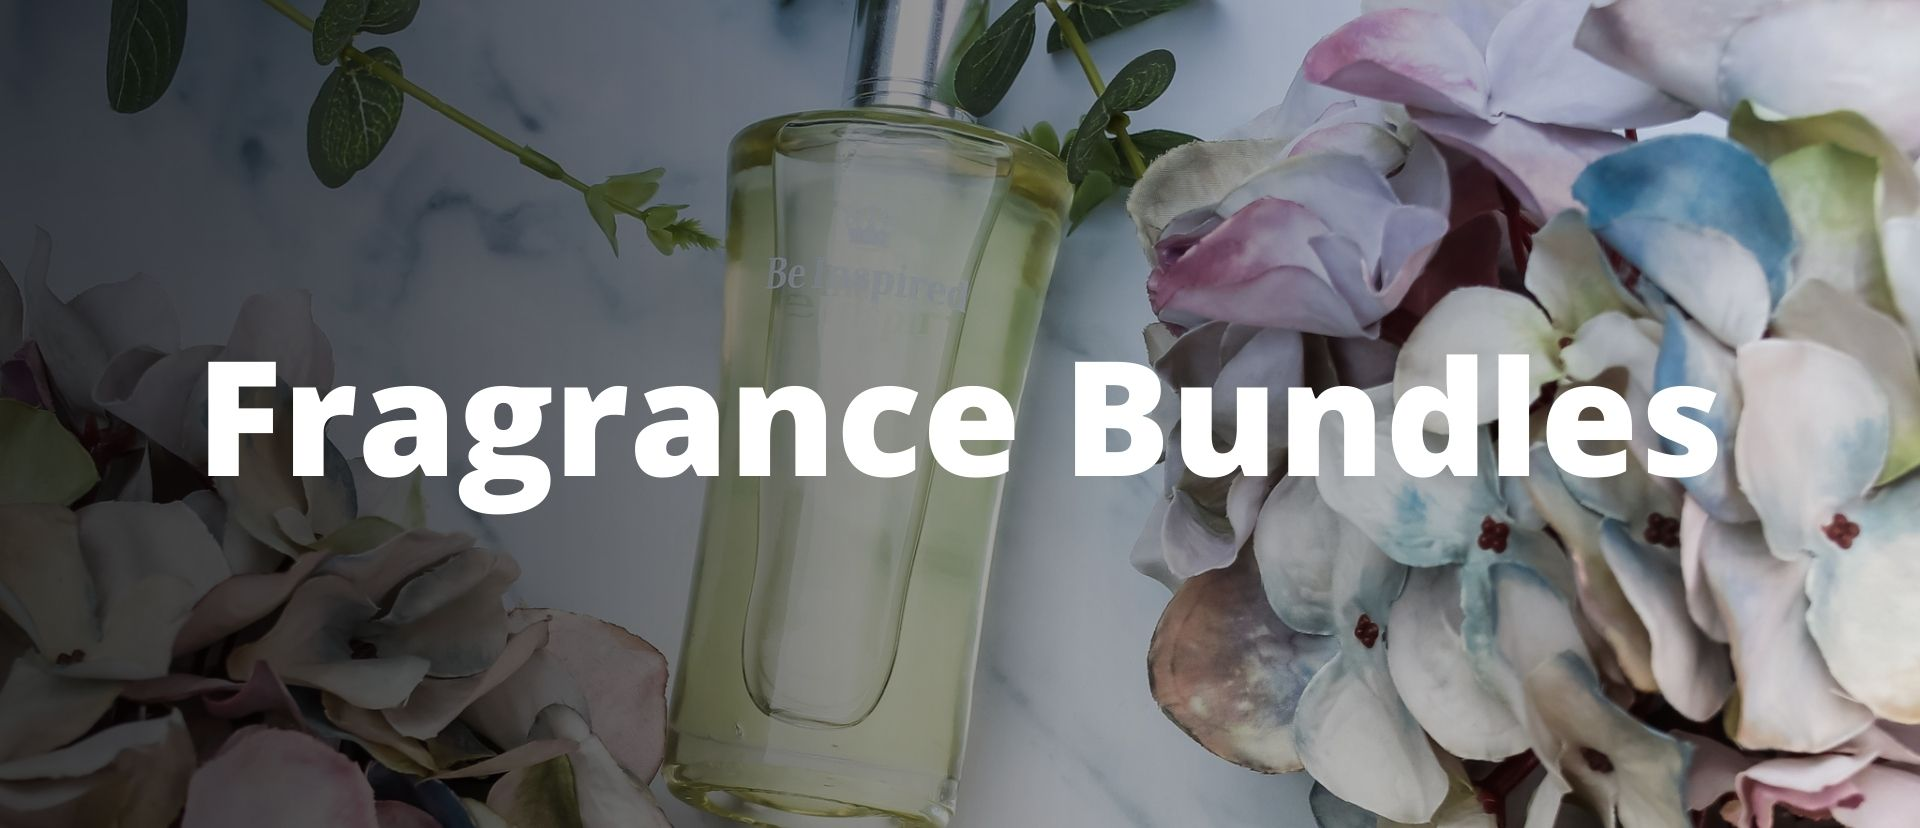 Fragrance Bundles